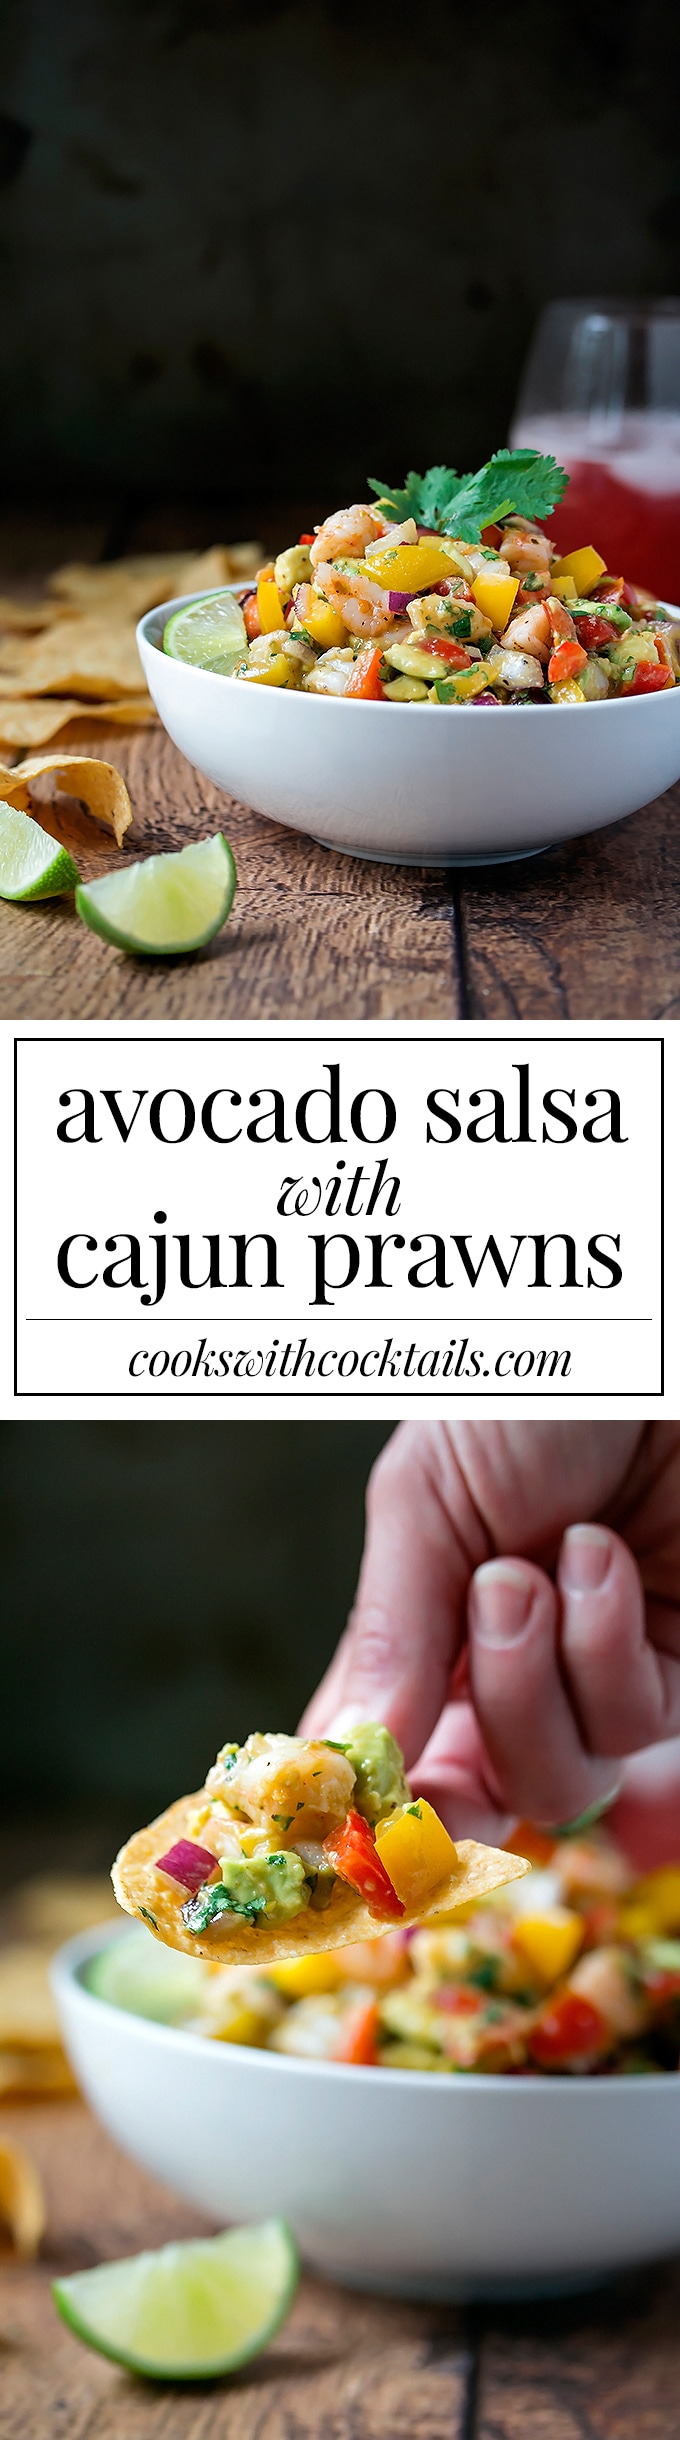 Avocado Salsa with Cajun Prawns